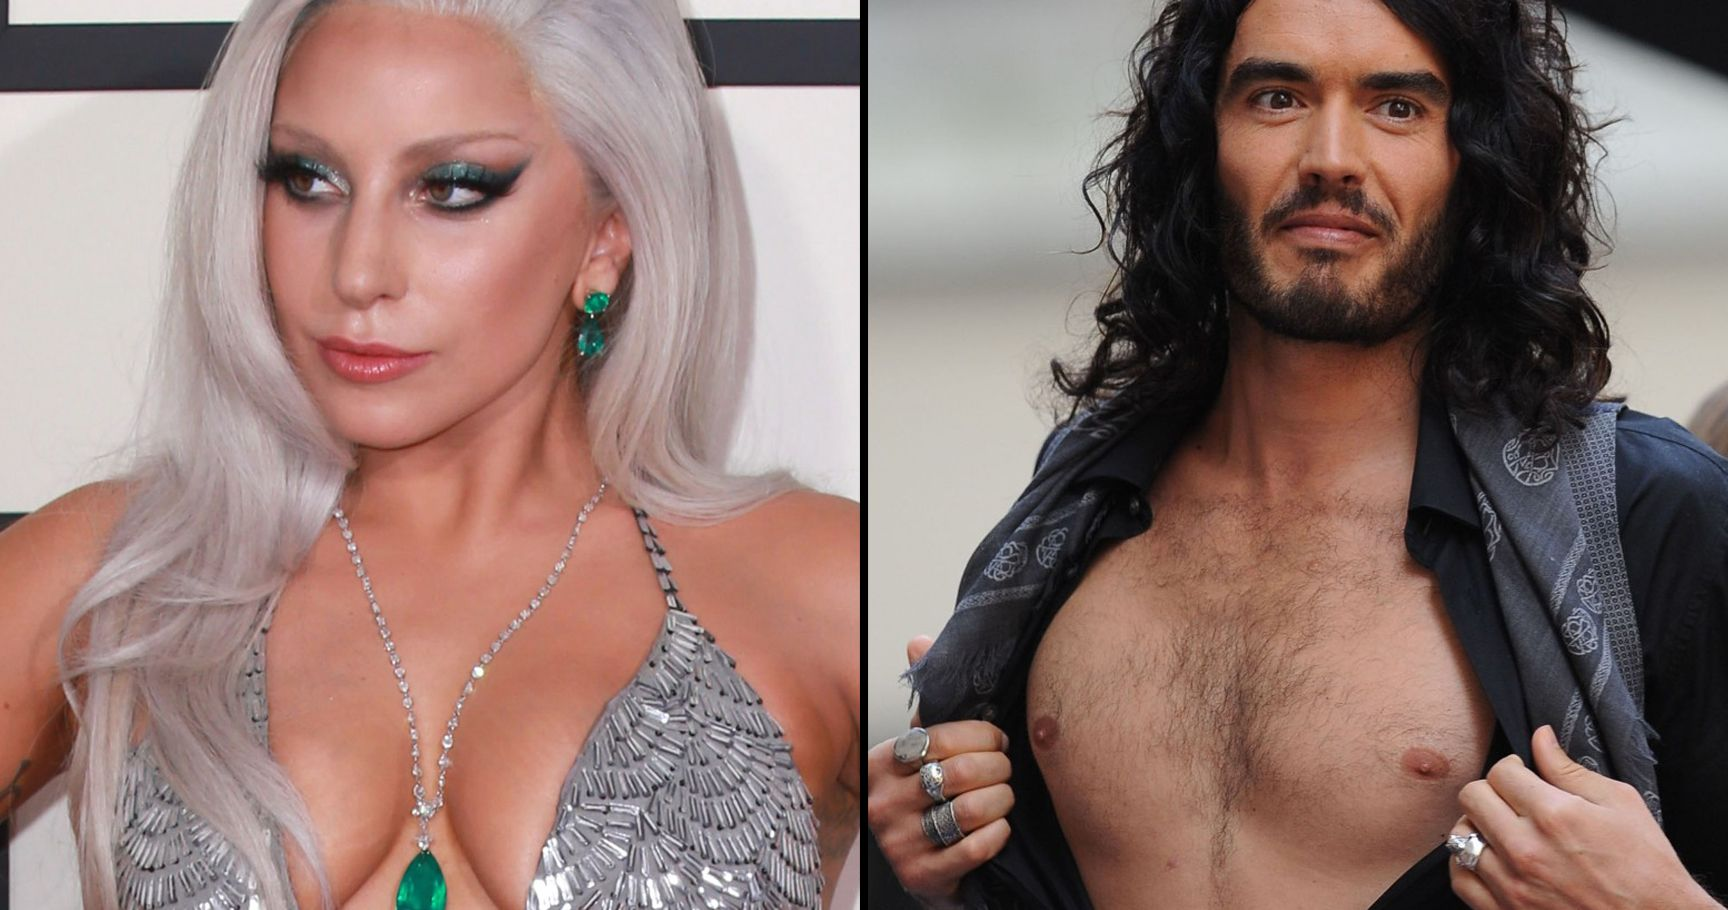 10 Celebrities Who Used To Sell Their Bodies